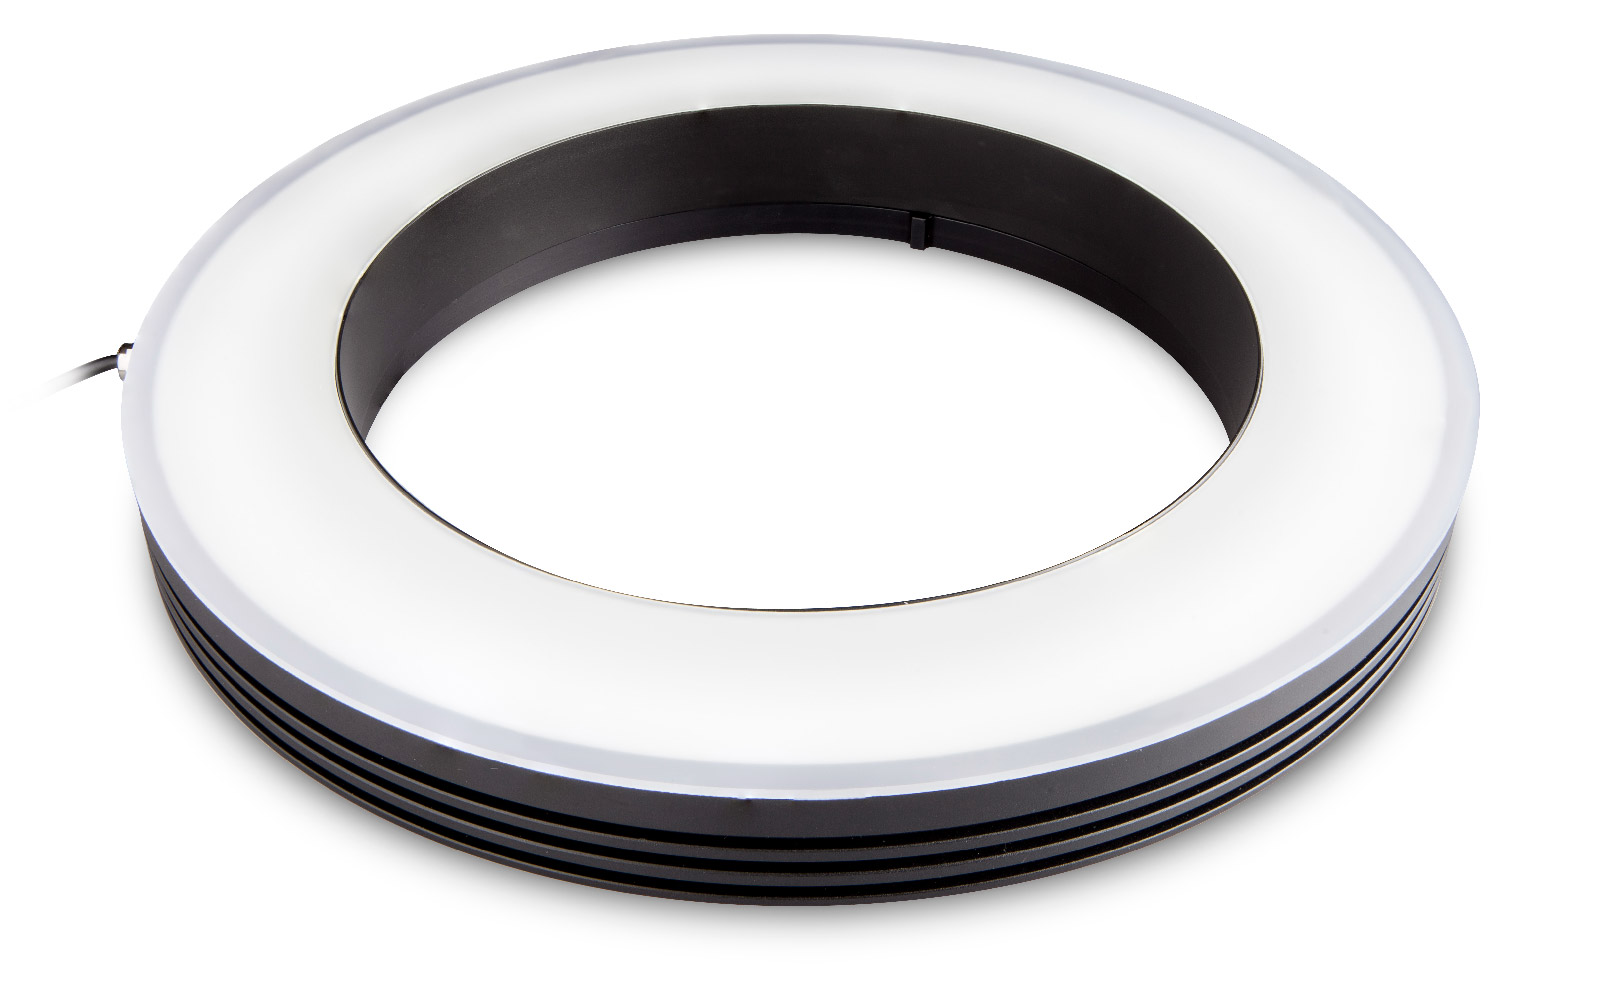 LTRN144NW ring LED illuminator